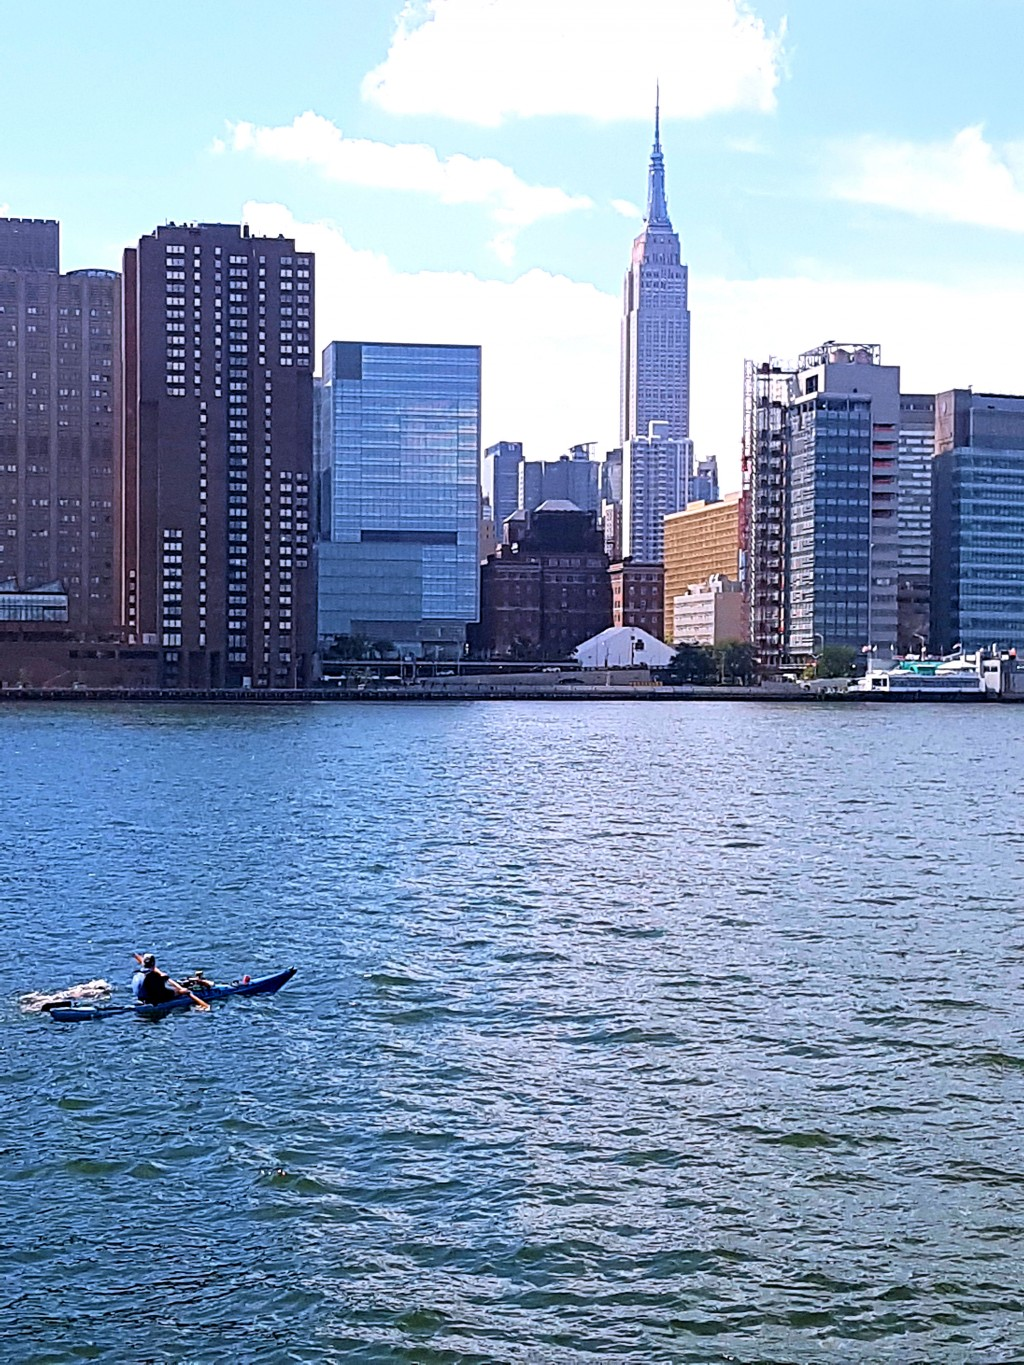 Swimming in front of the Empire State Building in the East River